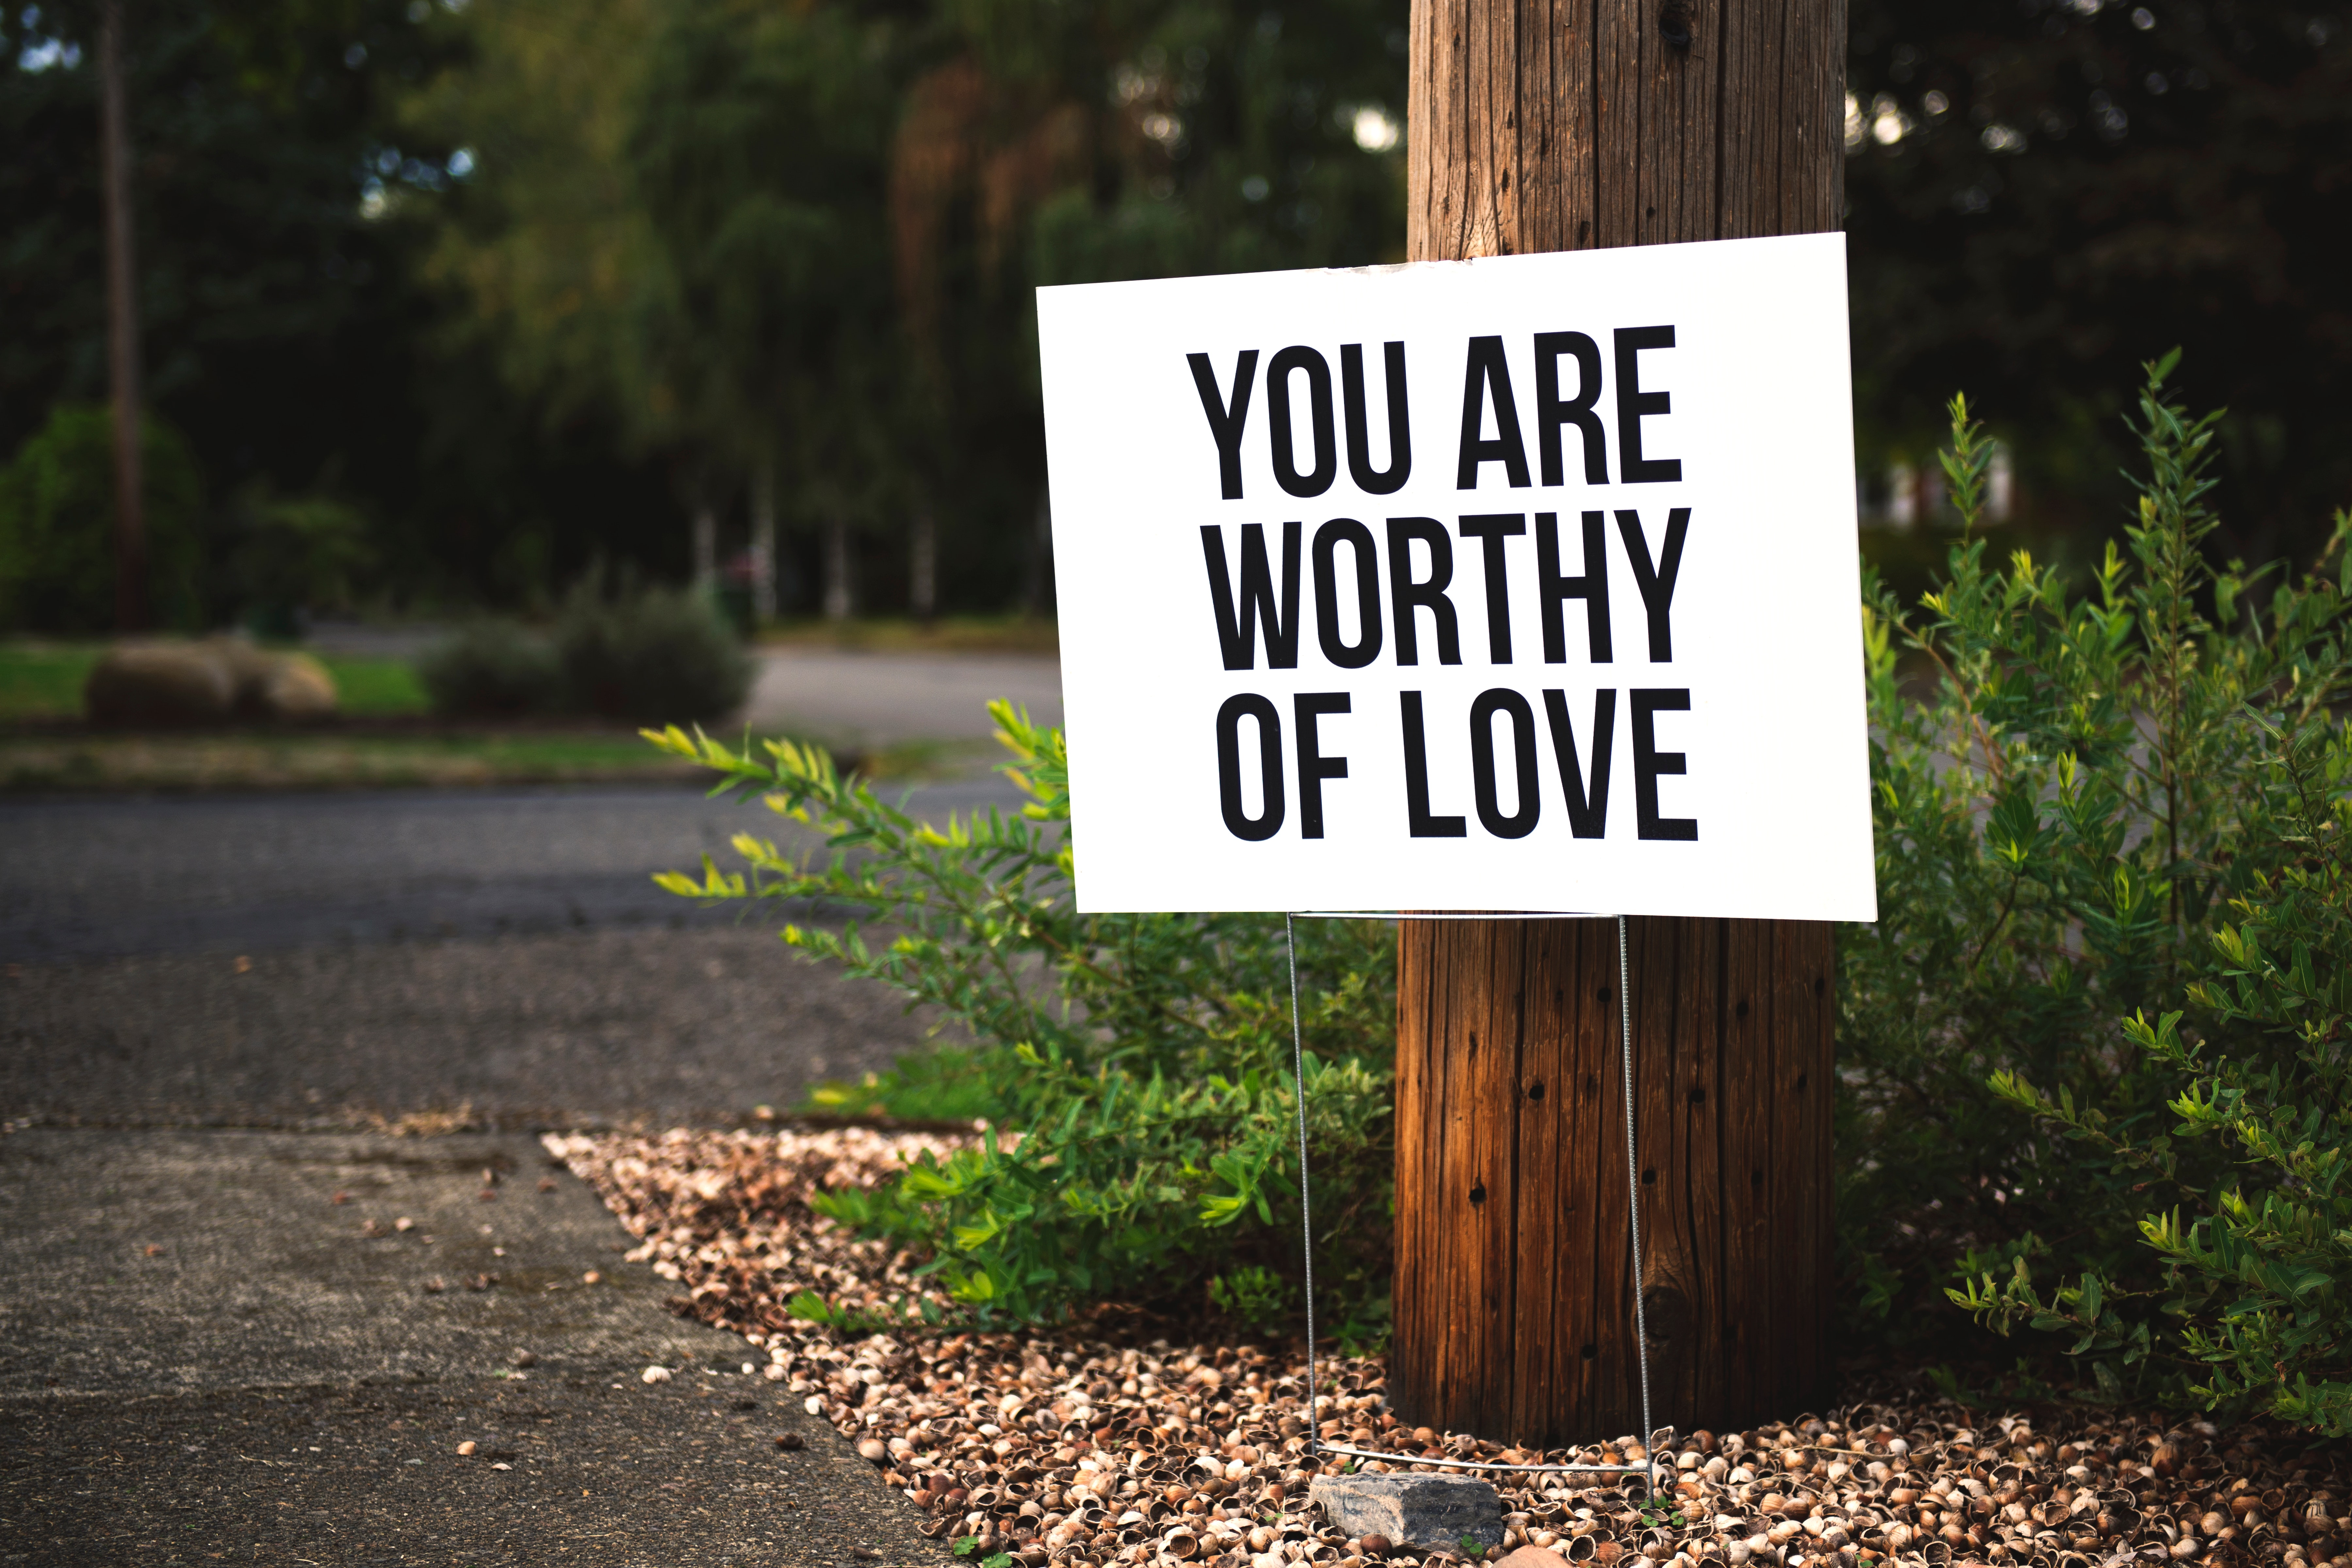 You Are Worthy of Love Signage on Brown Wooden Post Taken, Outdoors, Wood, Warning, Trees, HQ Photo